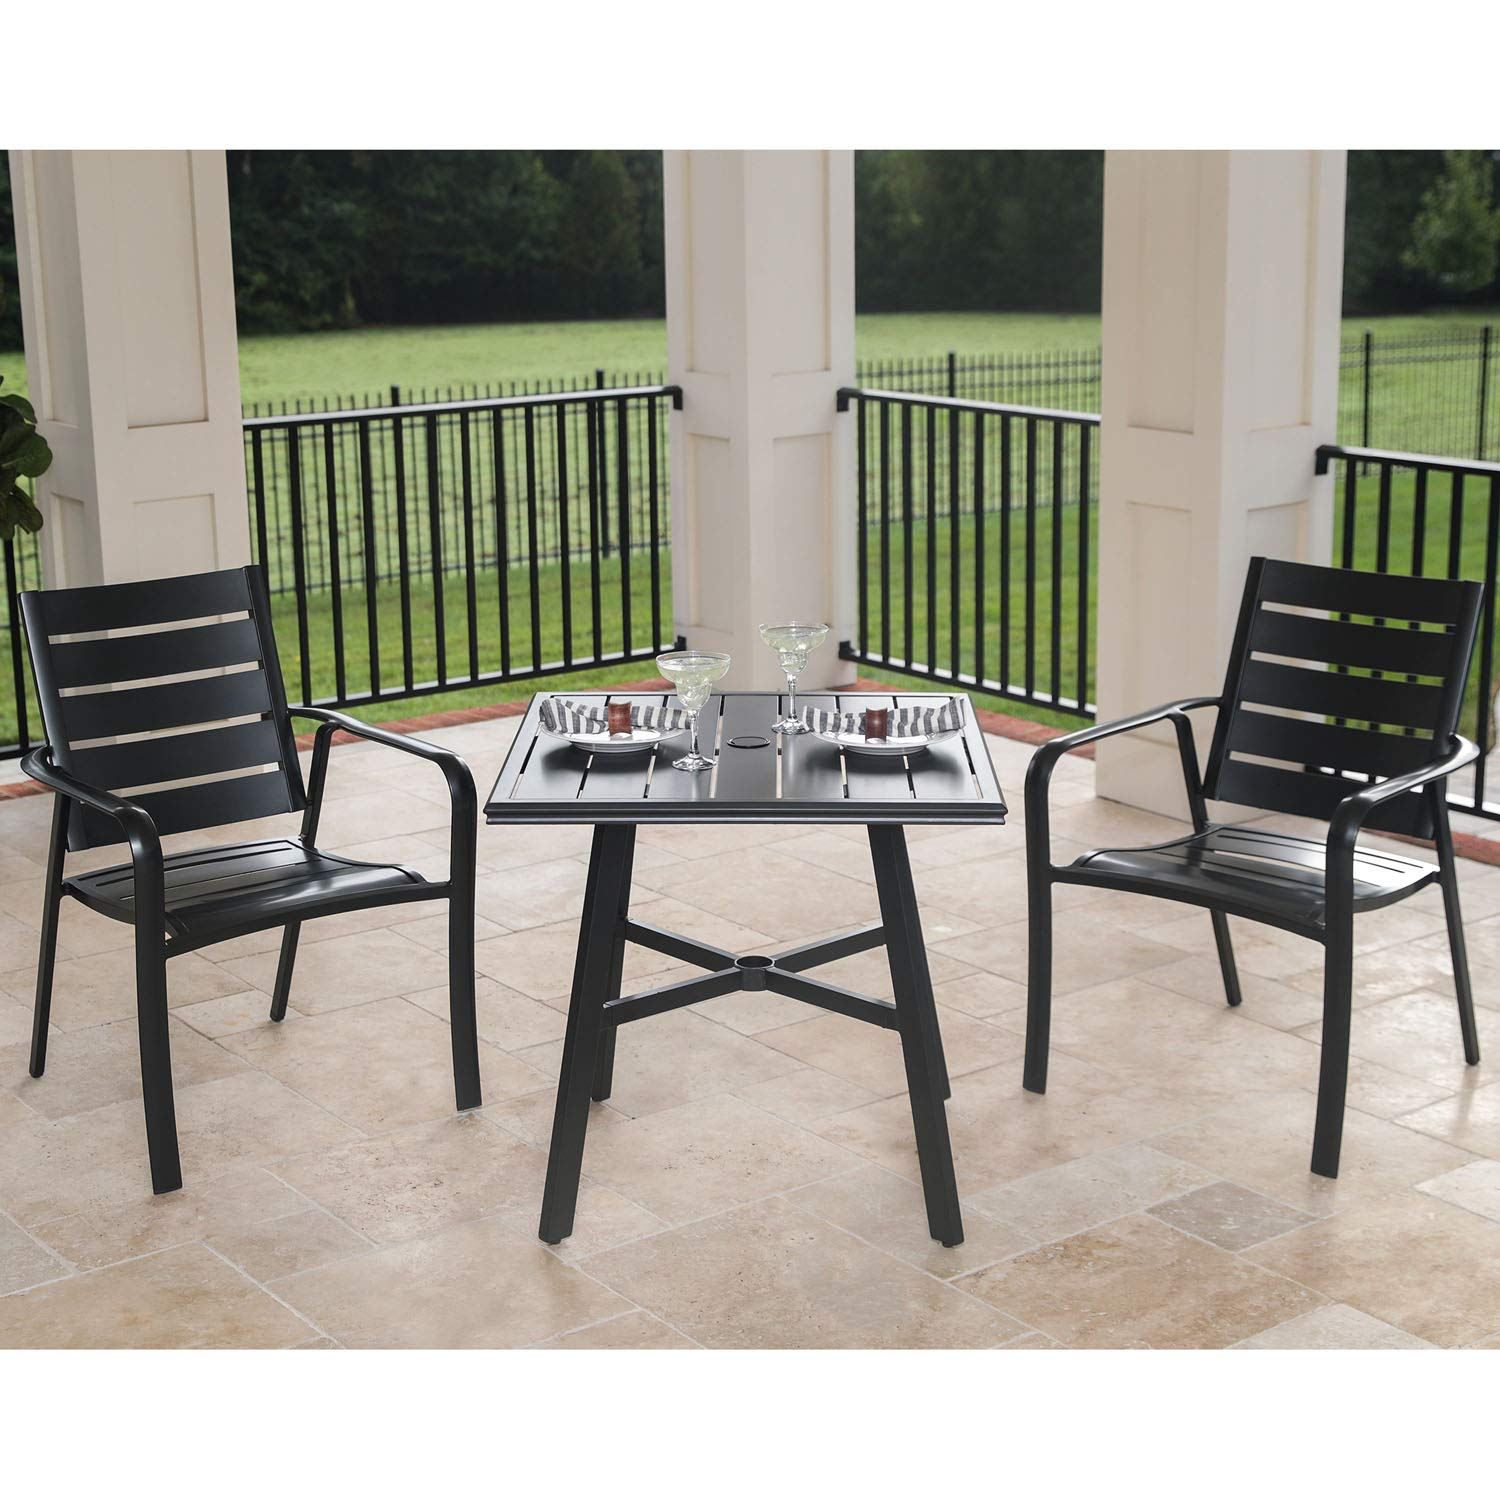 Amazon Com Hanover Cortdn3pcs Cortino 3 Piece Grade Bistro Set